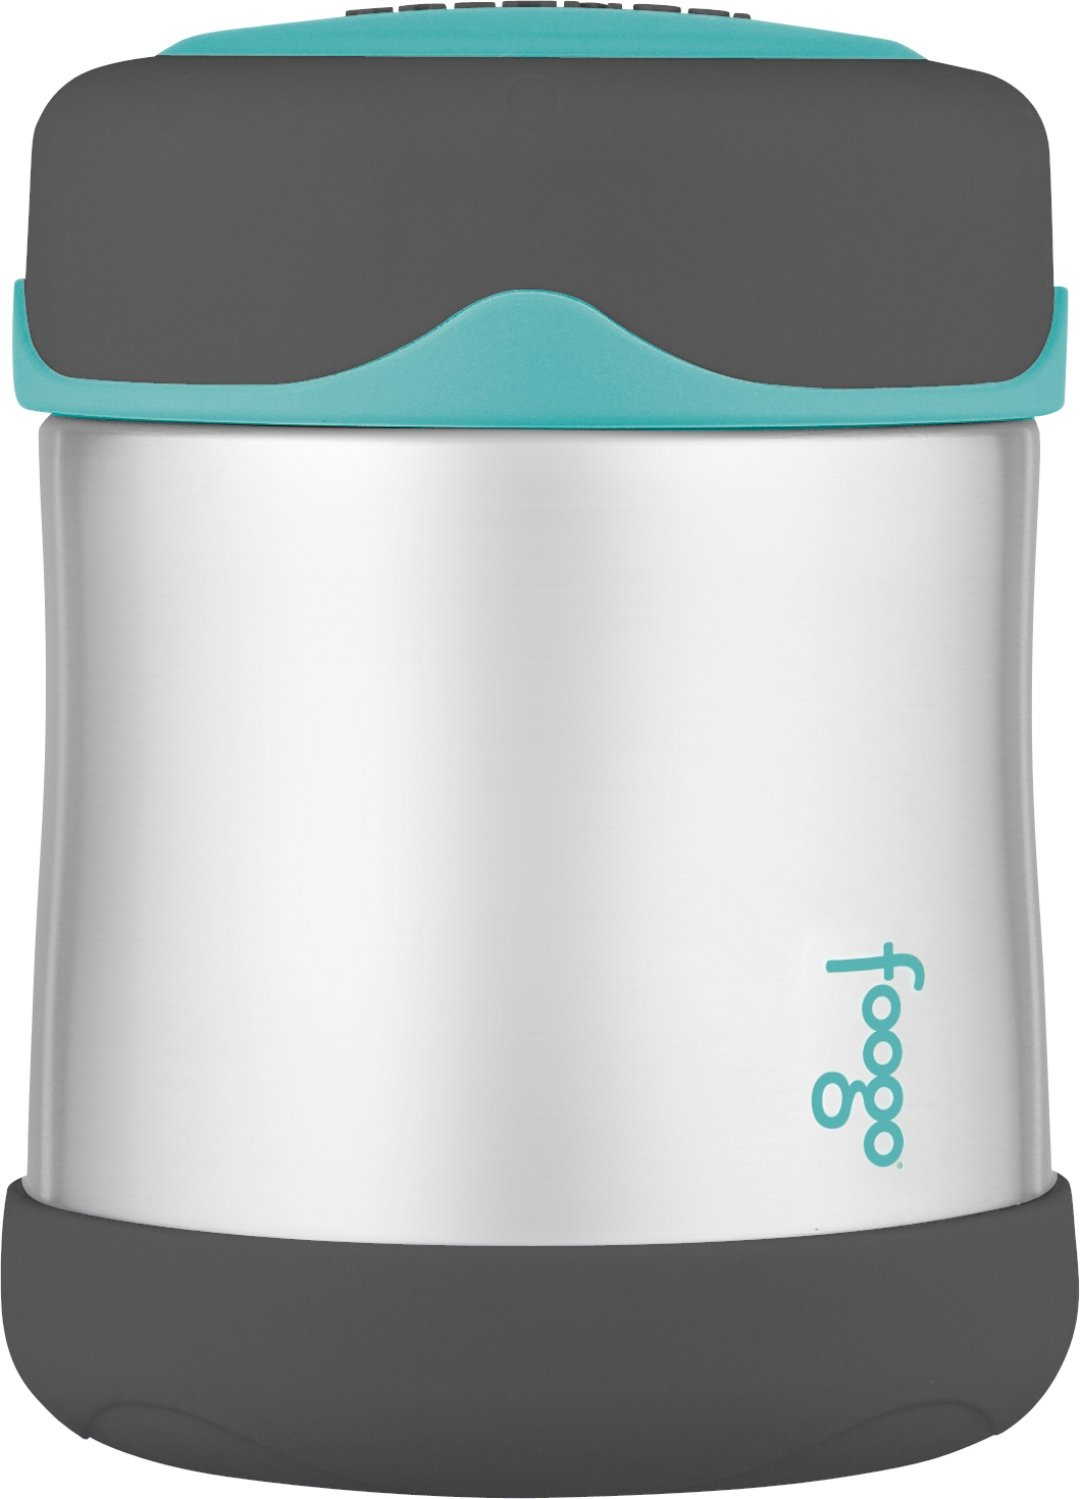 THERMOS FOOGO Vacuum Insulated Stainless Steel 10-Ounce Food Jar, Charcoal/Teal B3004TS2